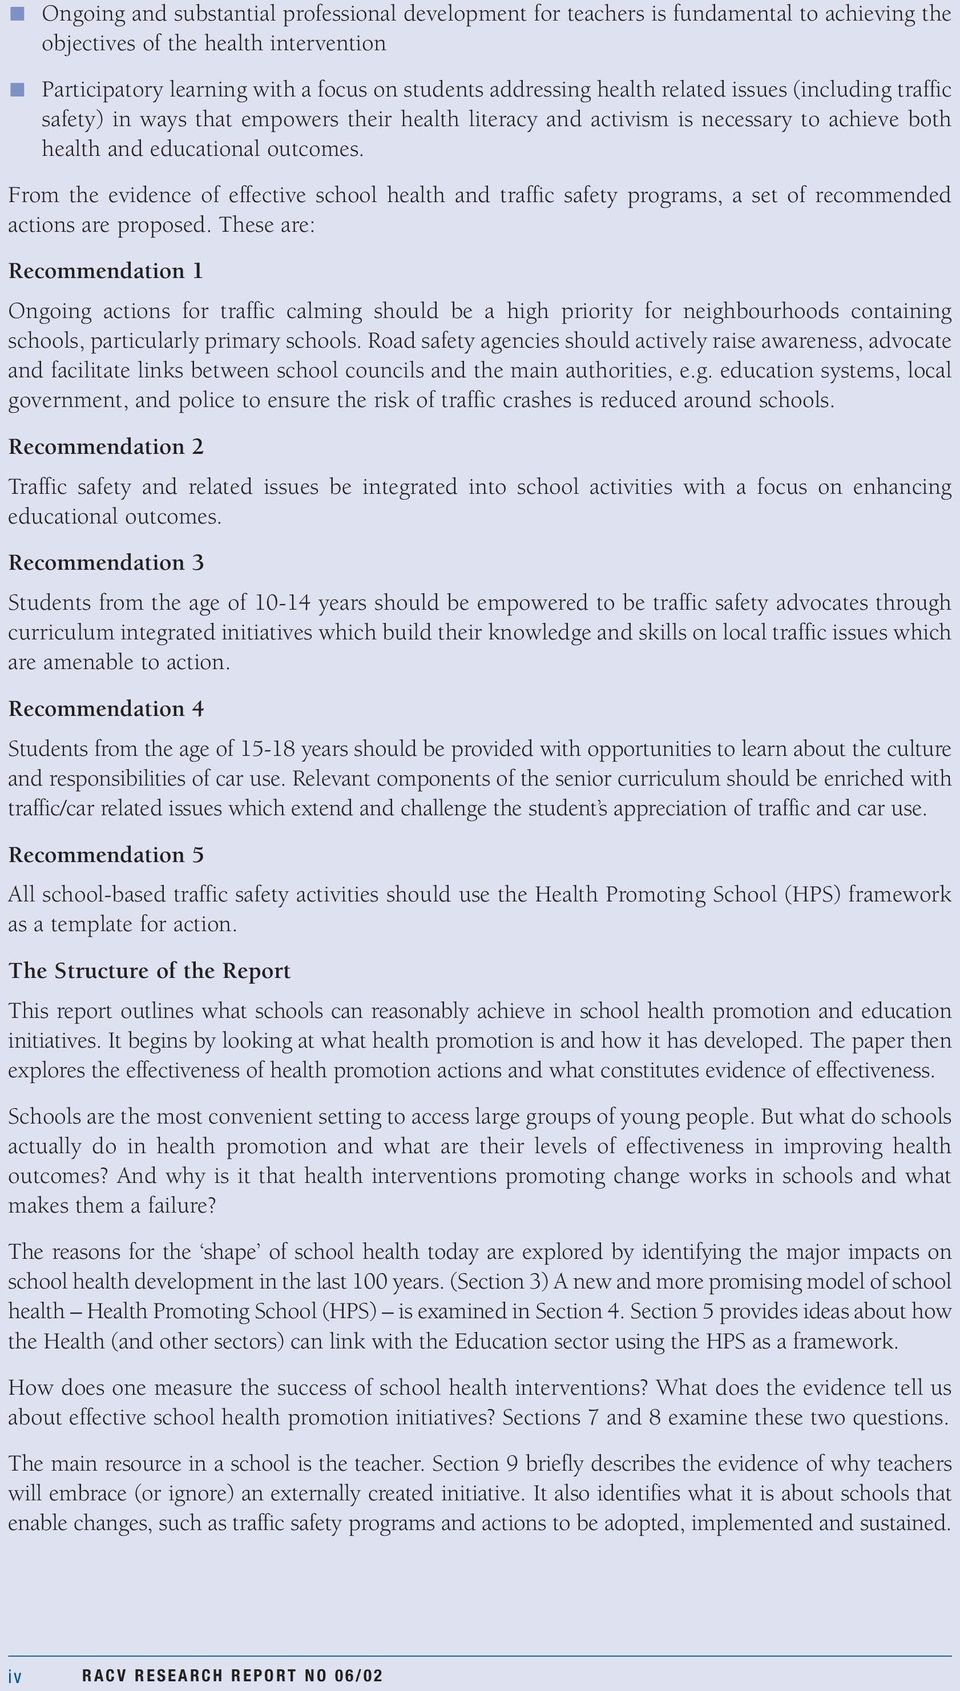 From the evidence of effective school health and traffic safety programs, a set of recommended actions are proposed.